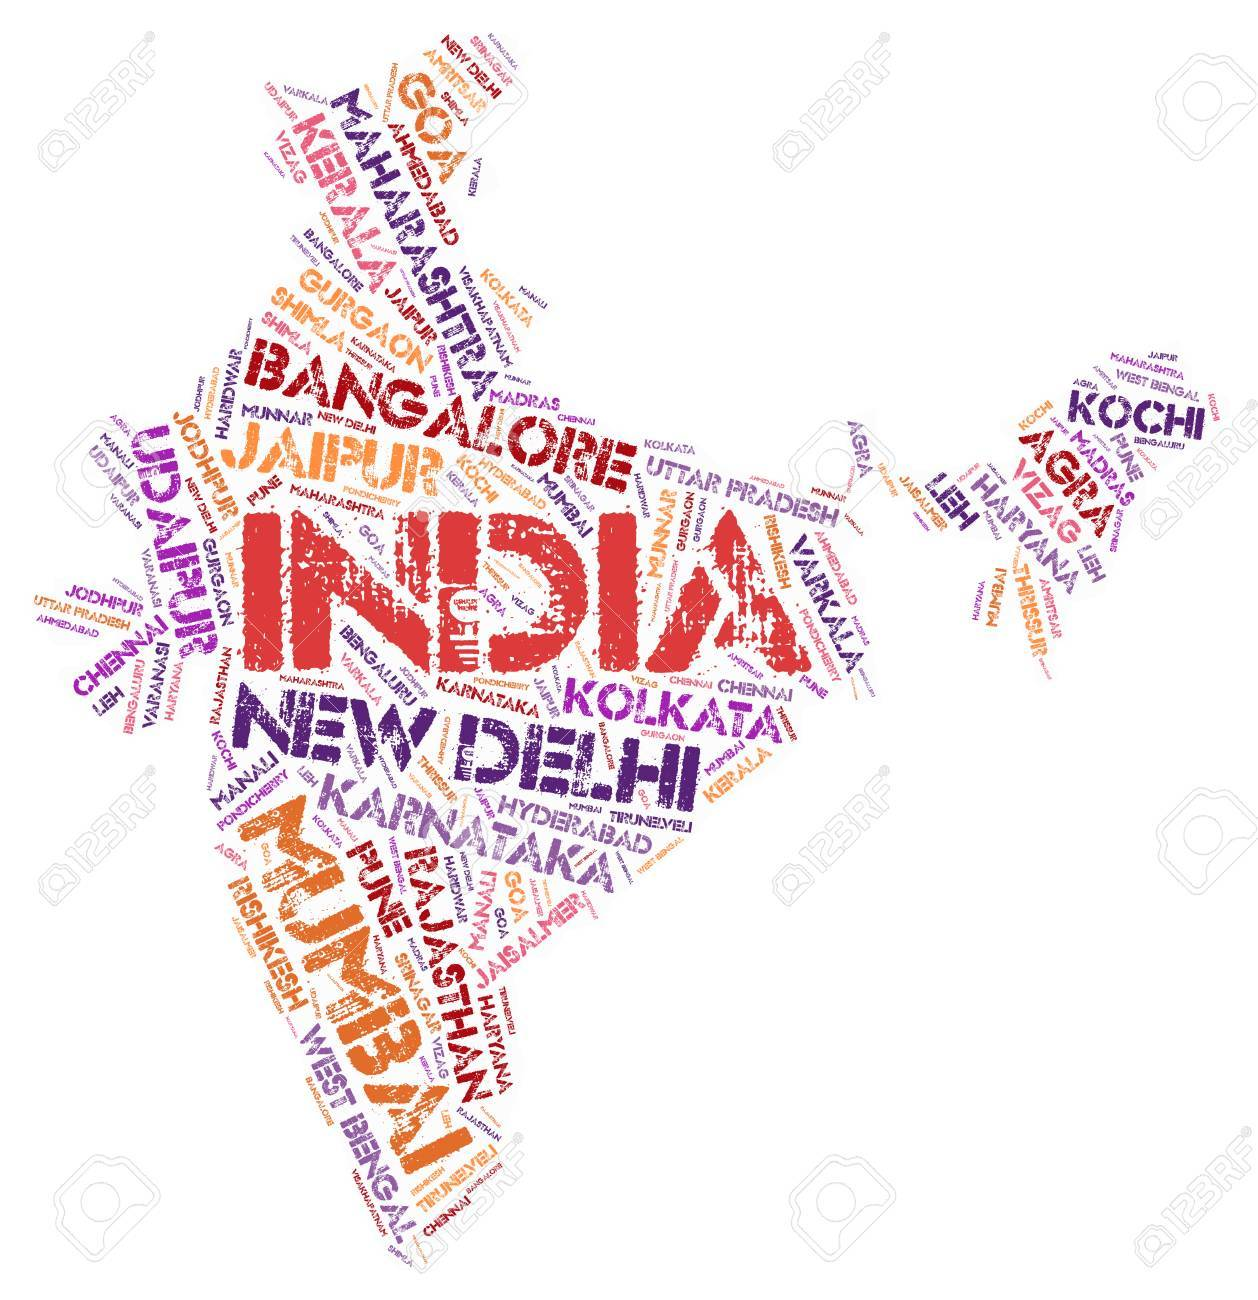 India map silhouette word cloud with most por travel destinations on about india, norway travel map, kolkata travel map, jiu jitsu map, honduras travel map, colombia travel map, india tourism of the world, sweden travel map, south america travel map, india travel guide, china travel map, rajasthan map, monaco travel map, finland travel map, pacific ocean travel map, bhutan travel map, wales travel map, tourist map of india, language travel map, iran travel map, netherlands travel map, varanasi travel map, map of india, india tour, seychelles travel map, dominican republic travel map,